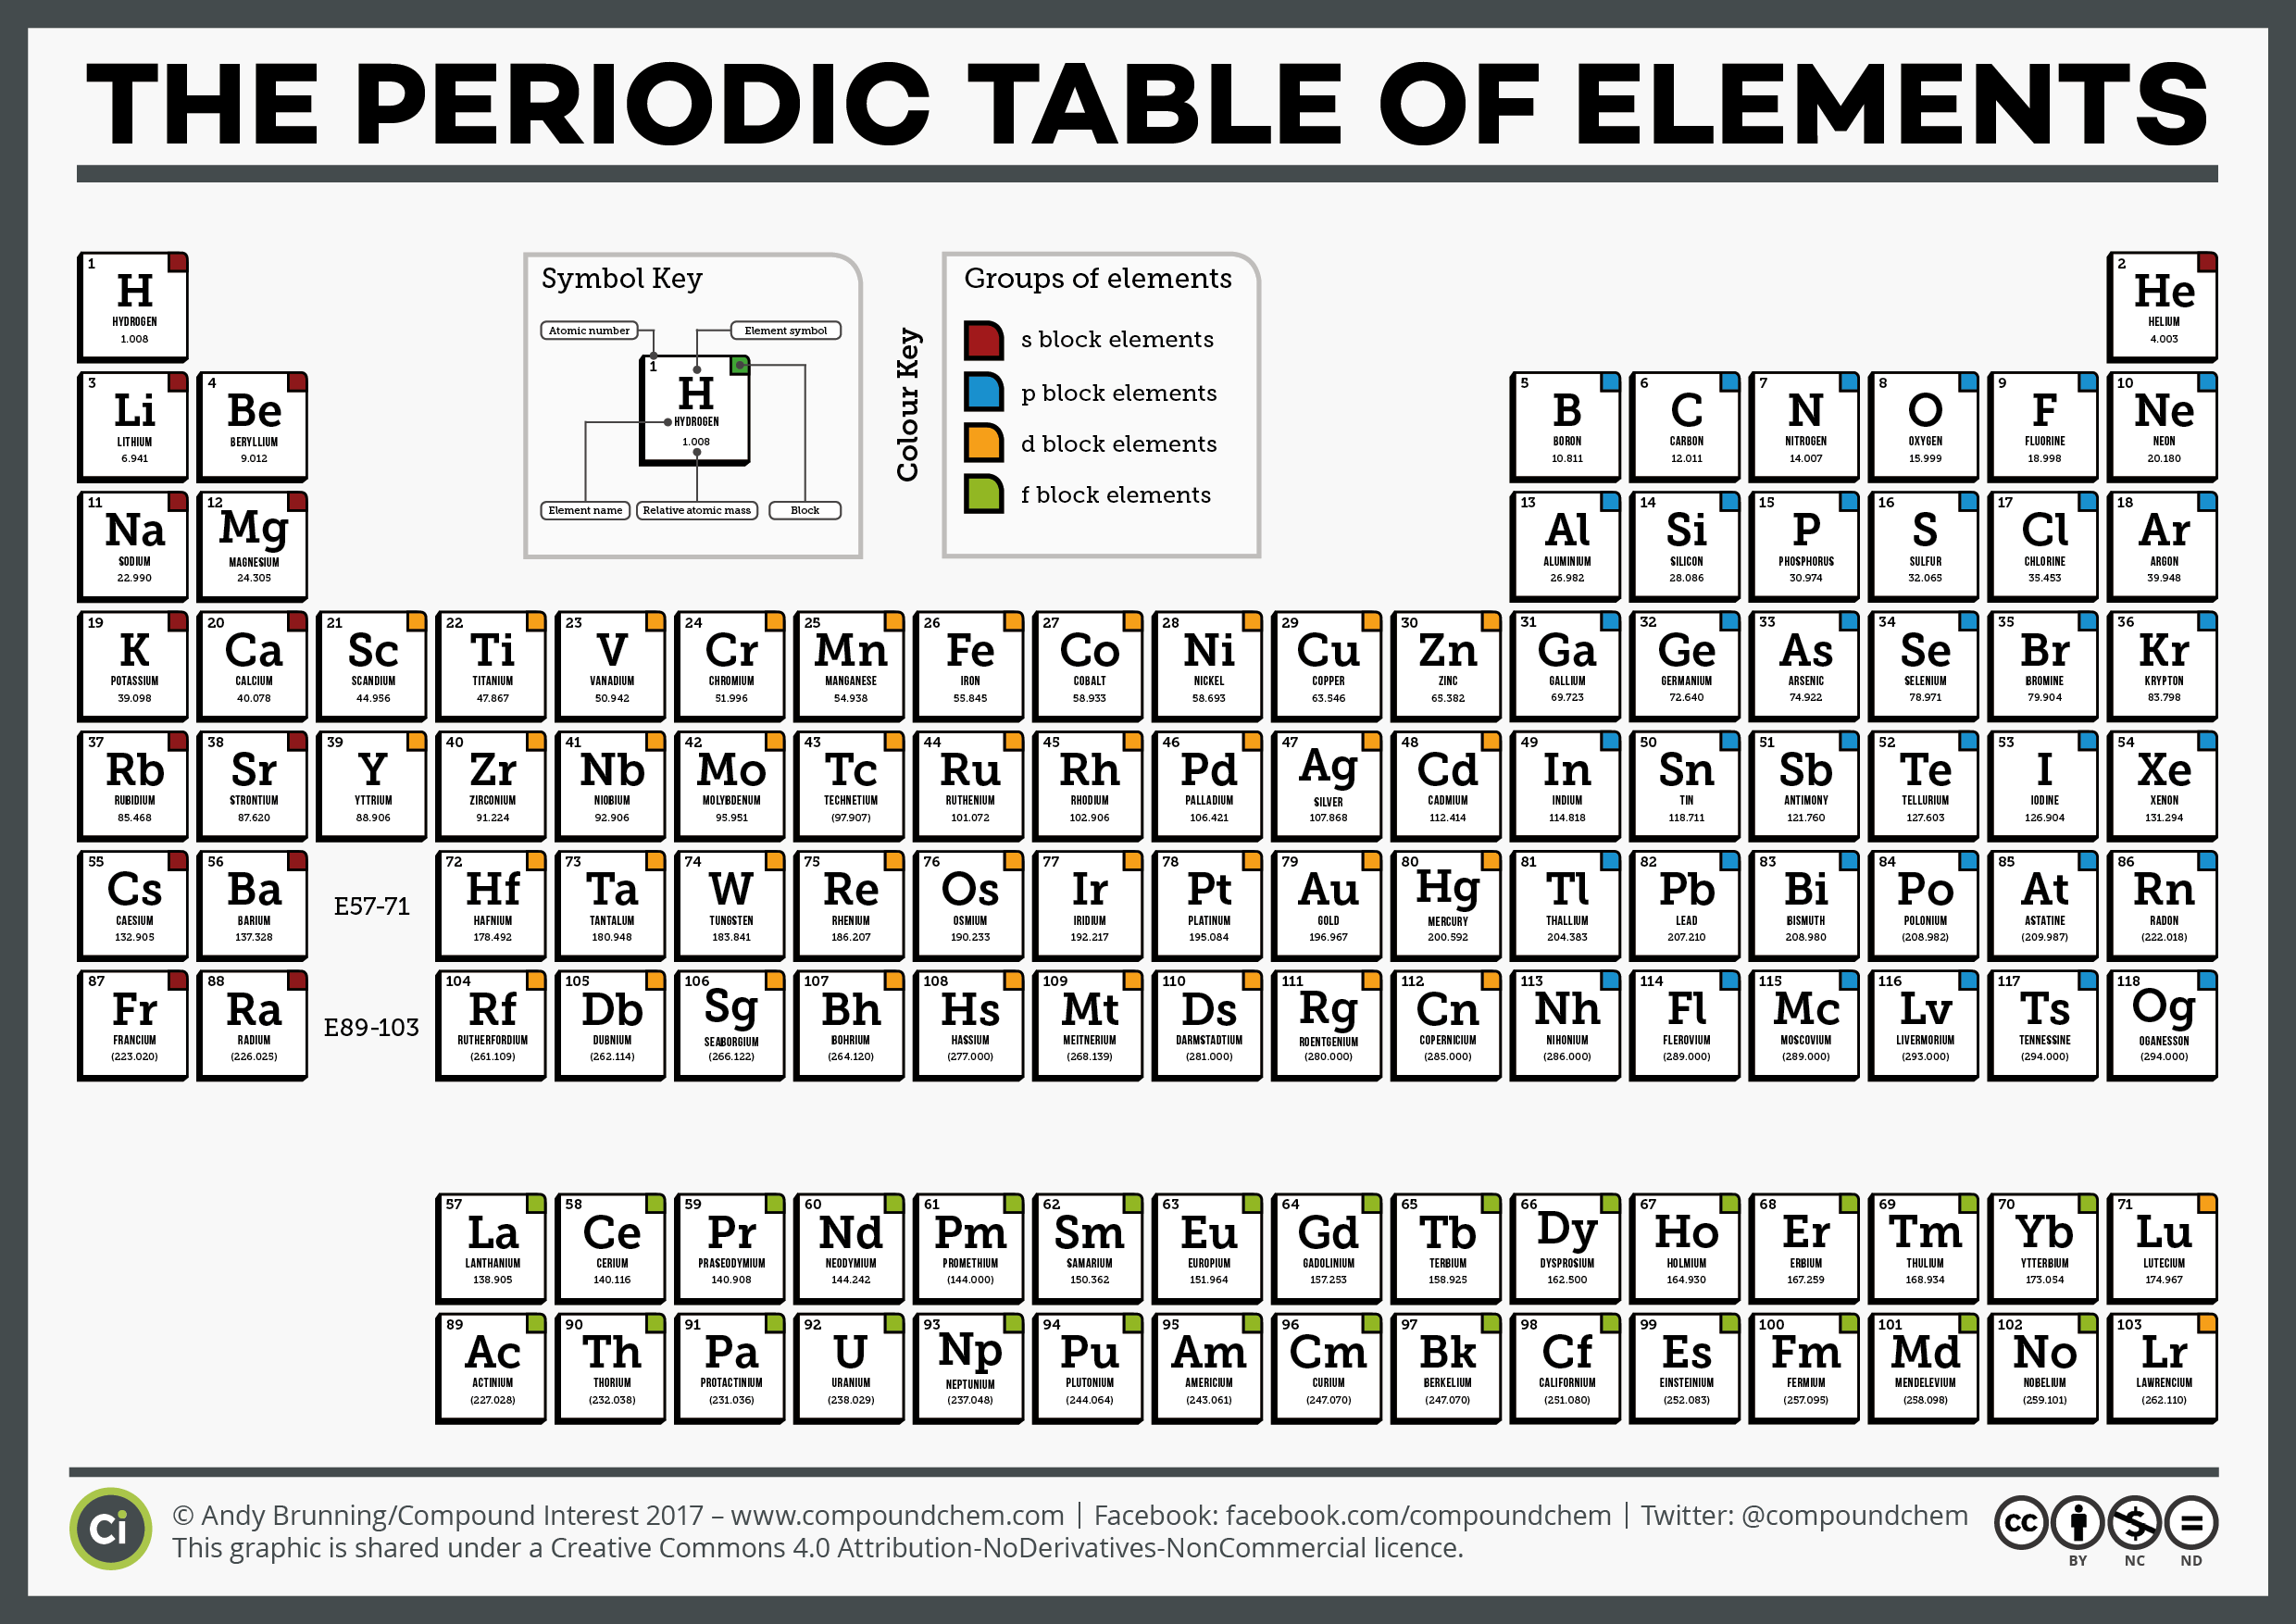 Compound interest national periodic table day six different ci simple periodic table of the elements 2017 gamestrikefo Image collections